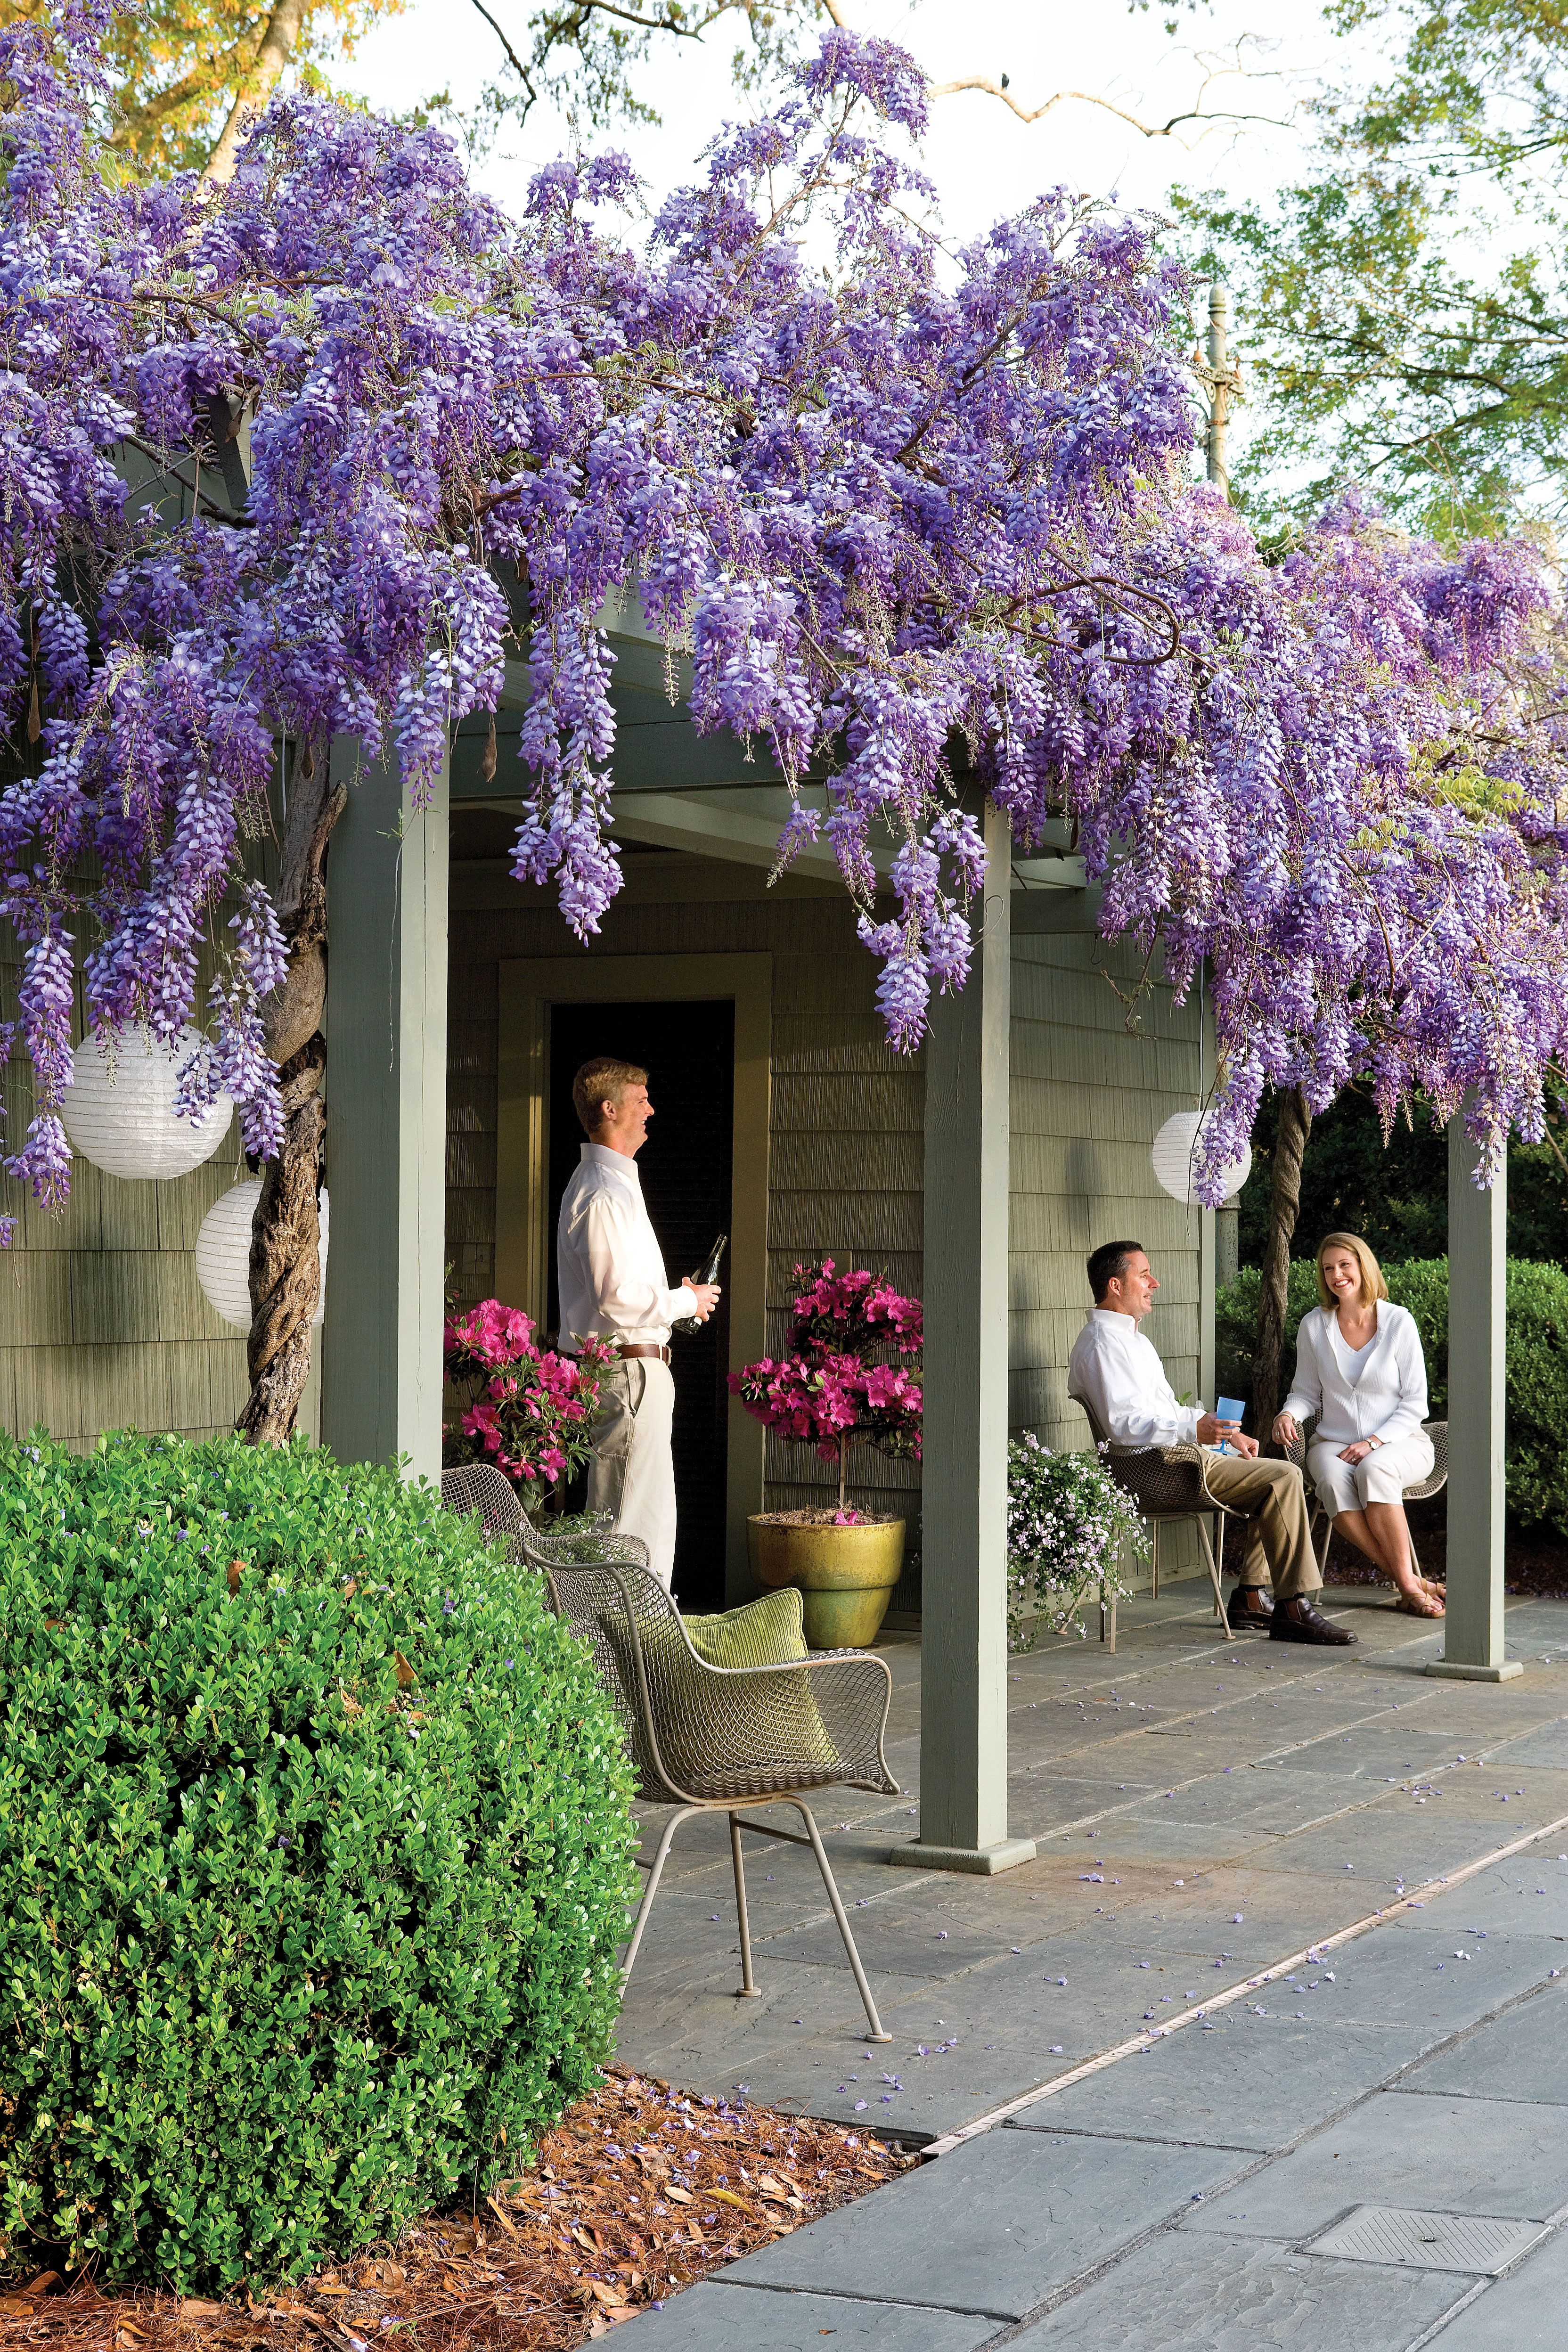 What You Need To Know And Love About Wisteria Wisteria Garden Wisteria Trellis Garden Vines